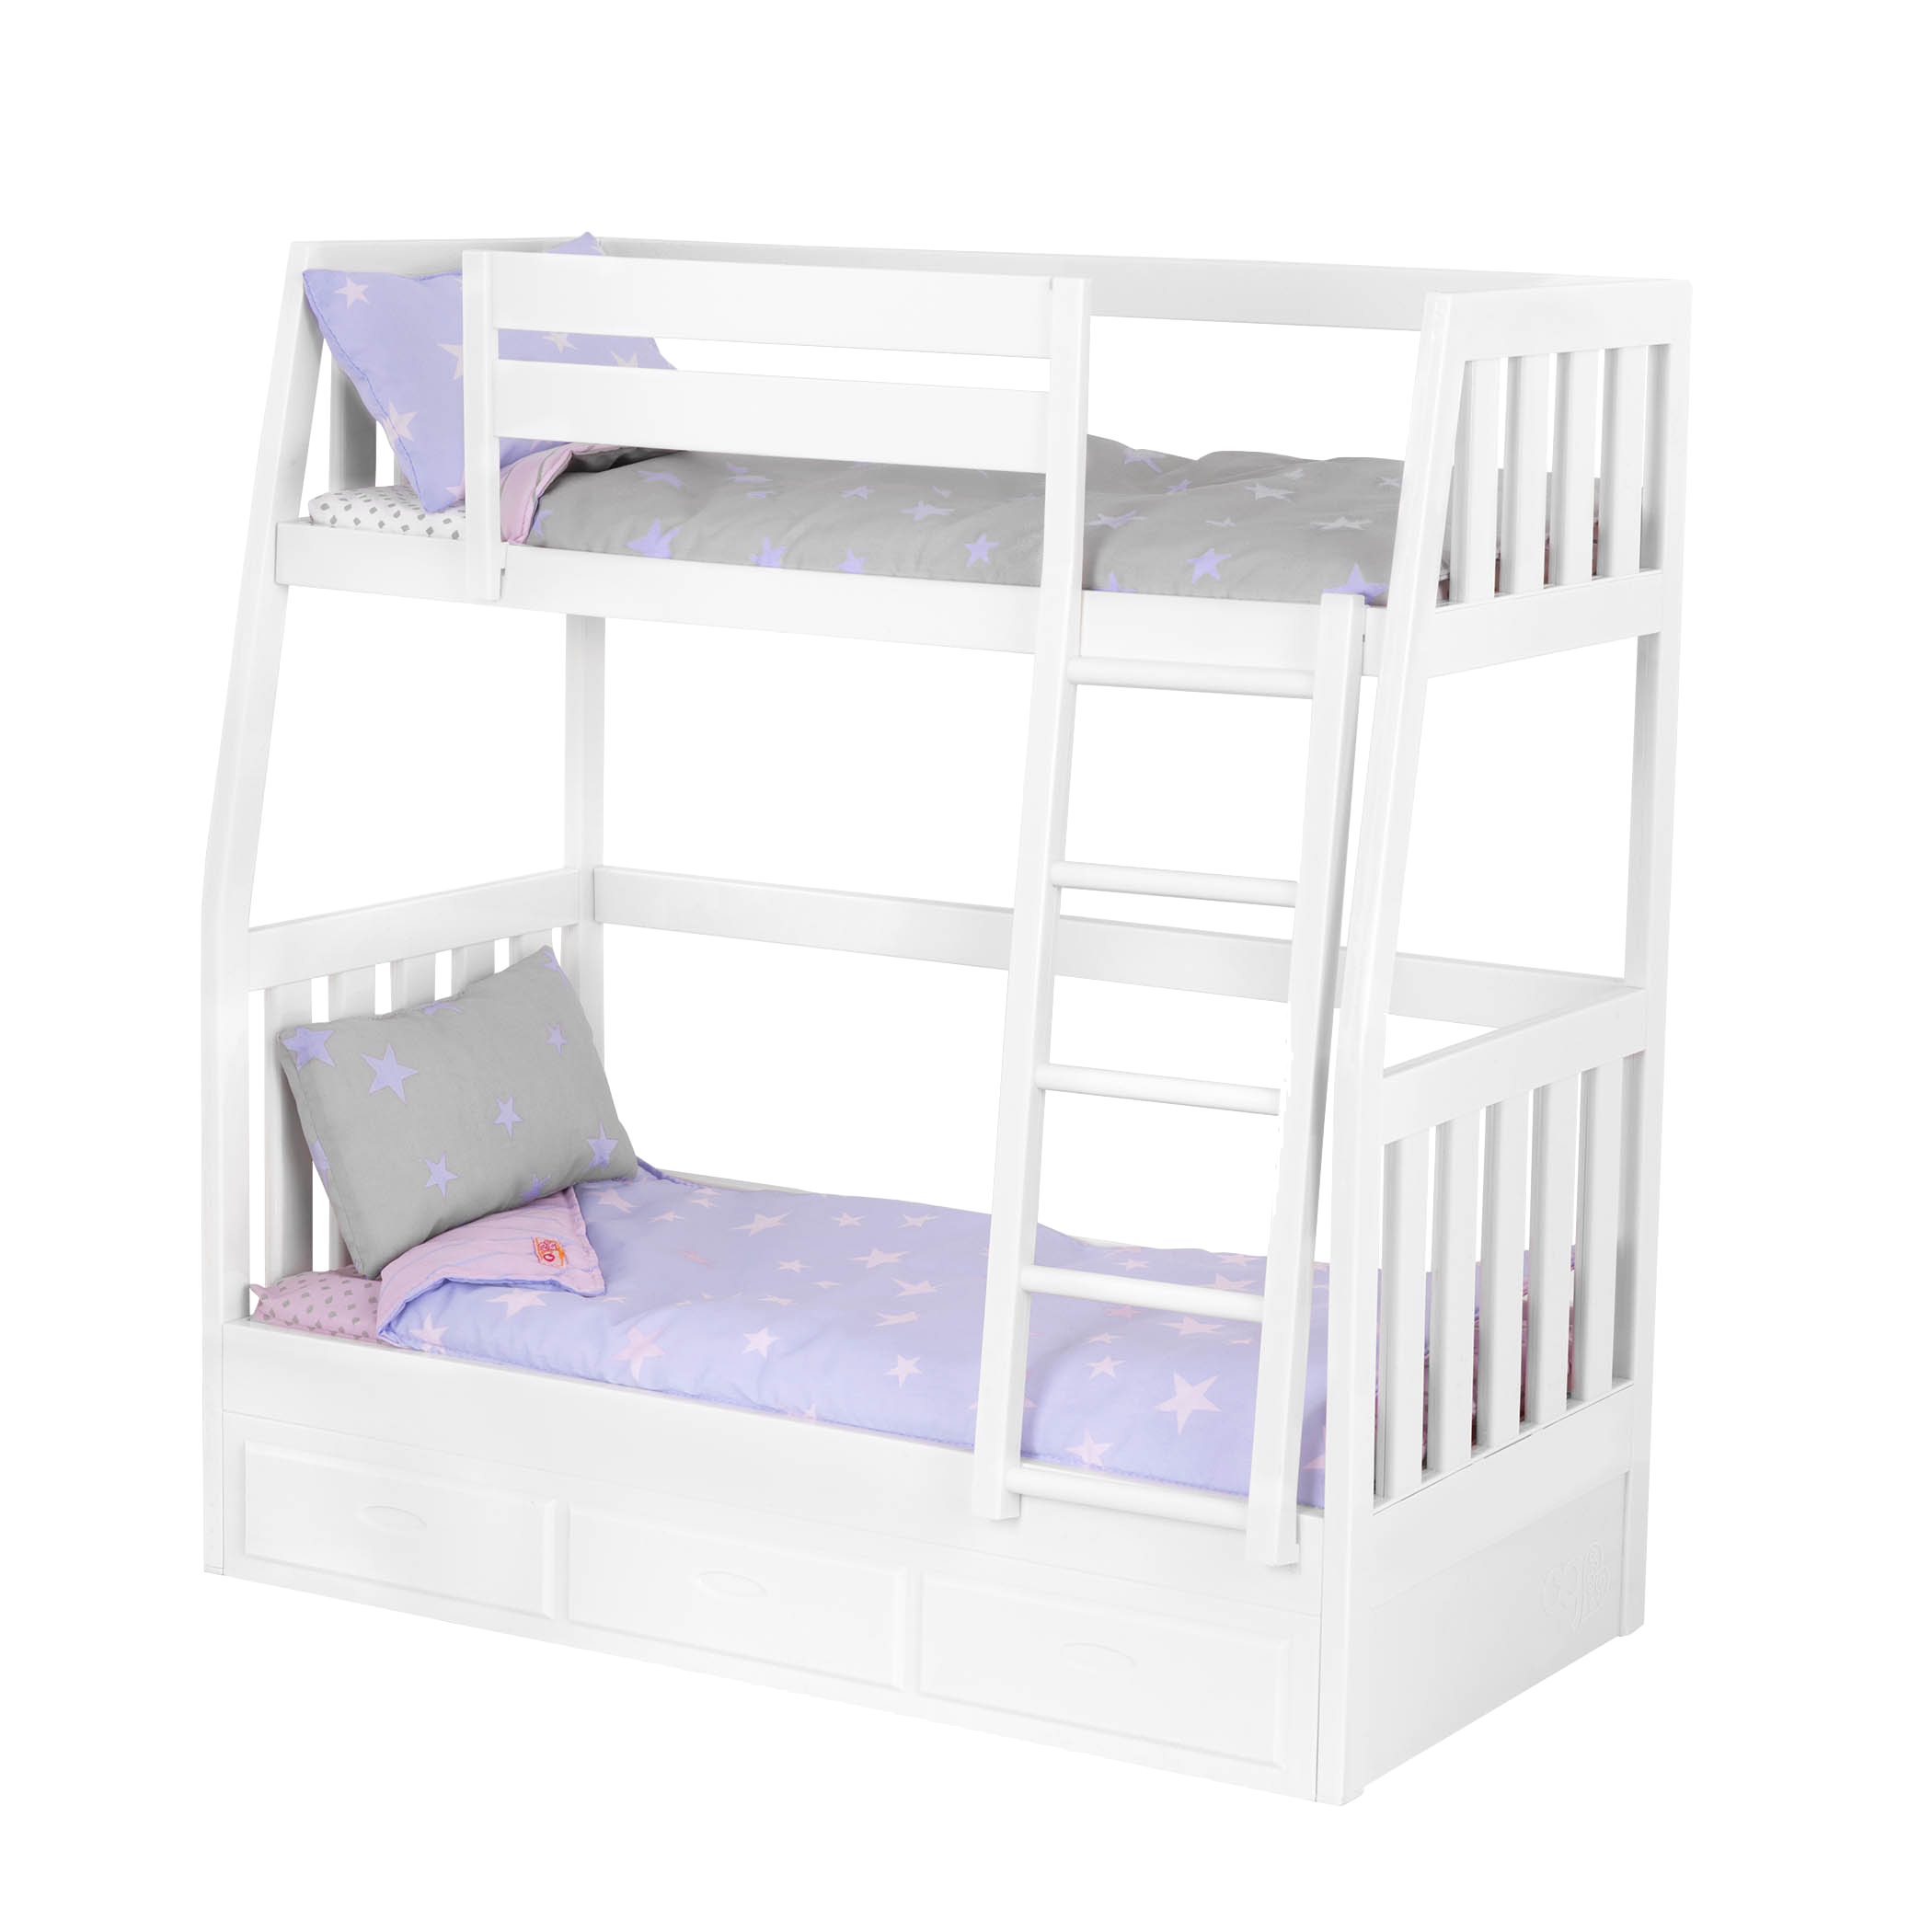 Dream Bunks Bed Set for 18-inch Dolls